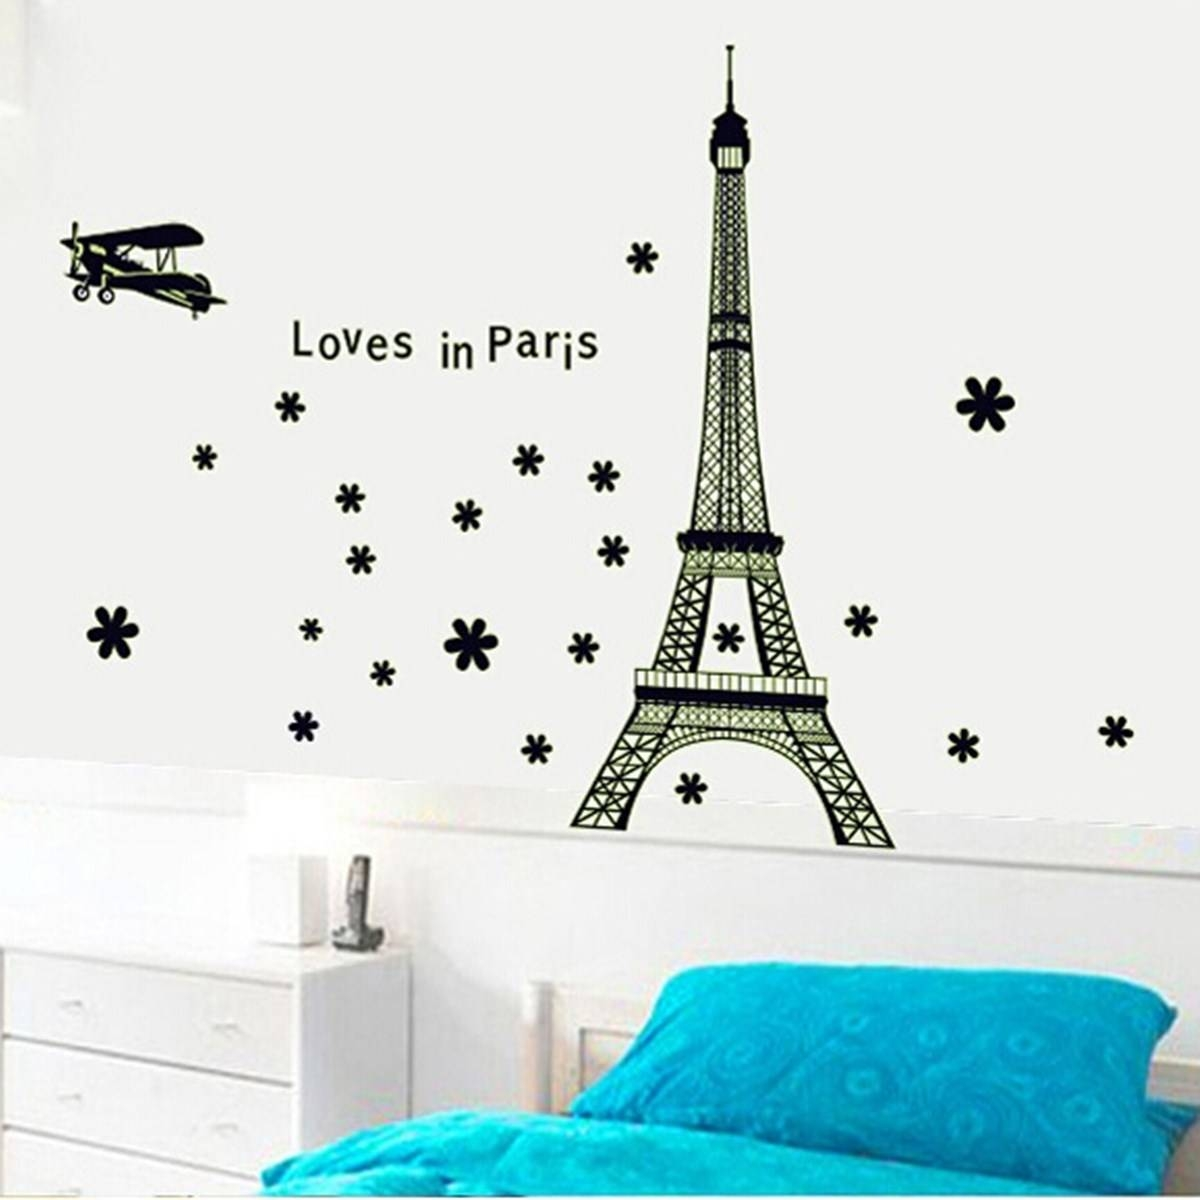 Paris Themed Bedroomcool Paris Themed Bedroom With Eiffel Tower Intended For Recent Paris Themed Stickers (View 4 of 15)